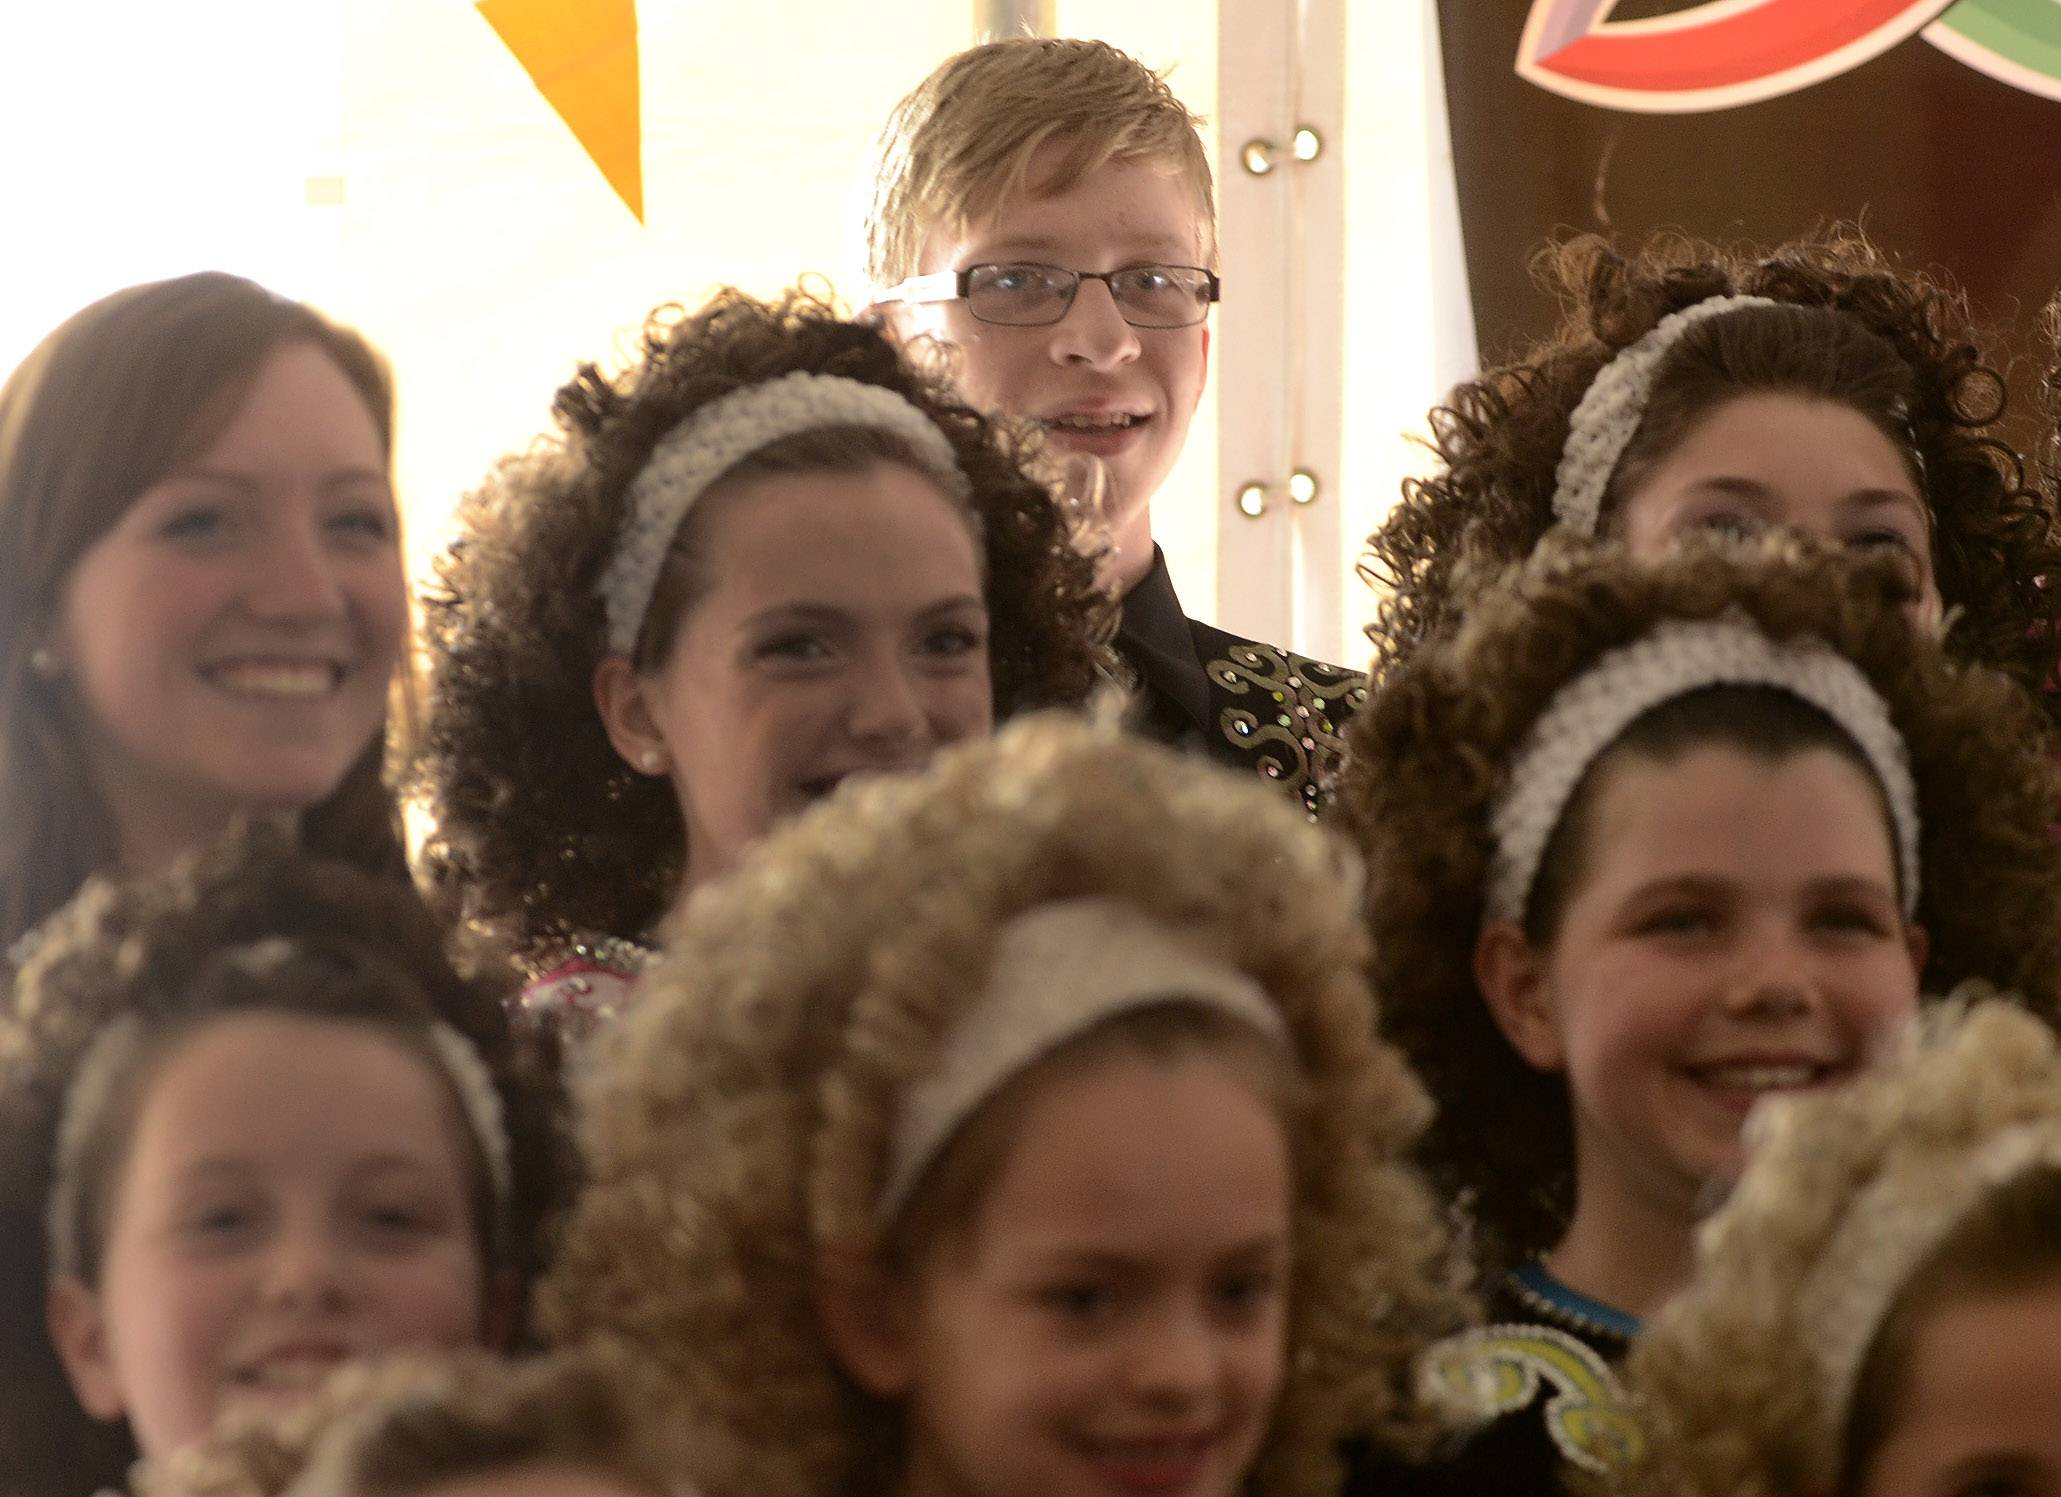 Dancers from Trinity Academy of Irish Dance, including Colin Olsen of Poplar Grove, entertain during Irish Fest Saturday in Mount Prospect. Colin, 15, is one of three boys among 60 girls in the troupe.